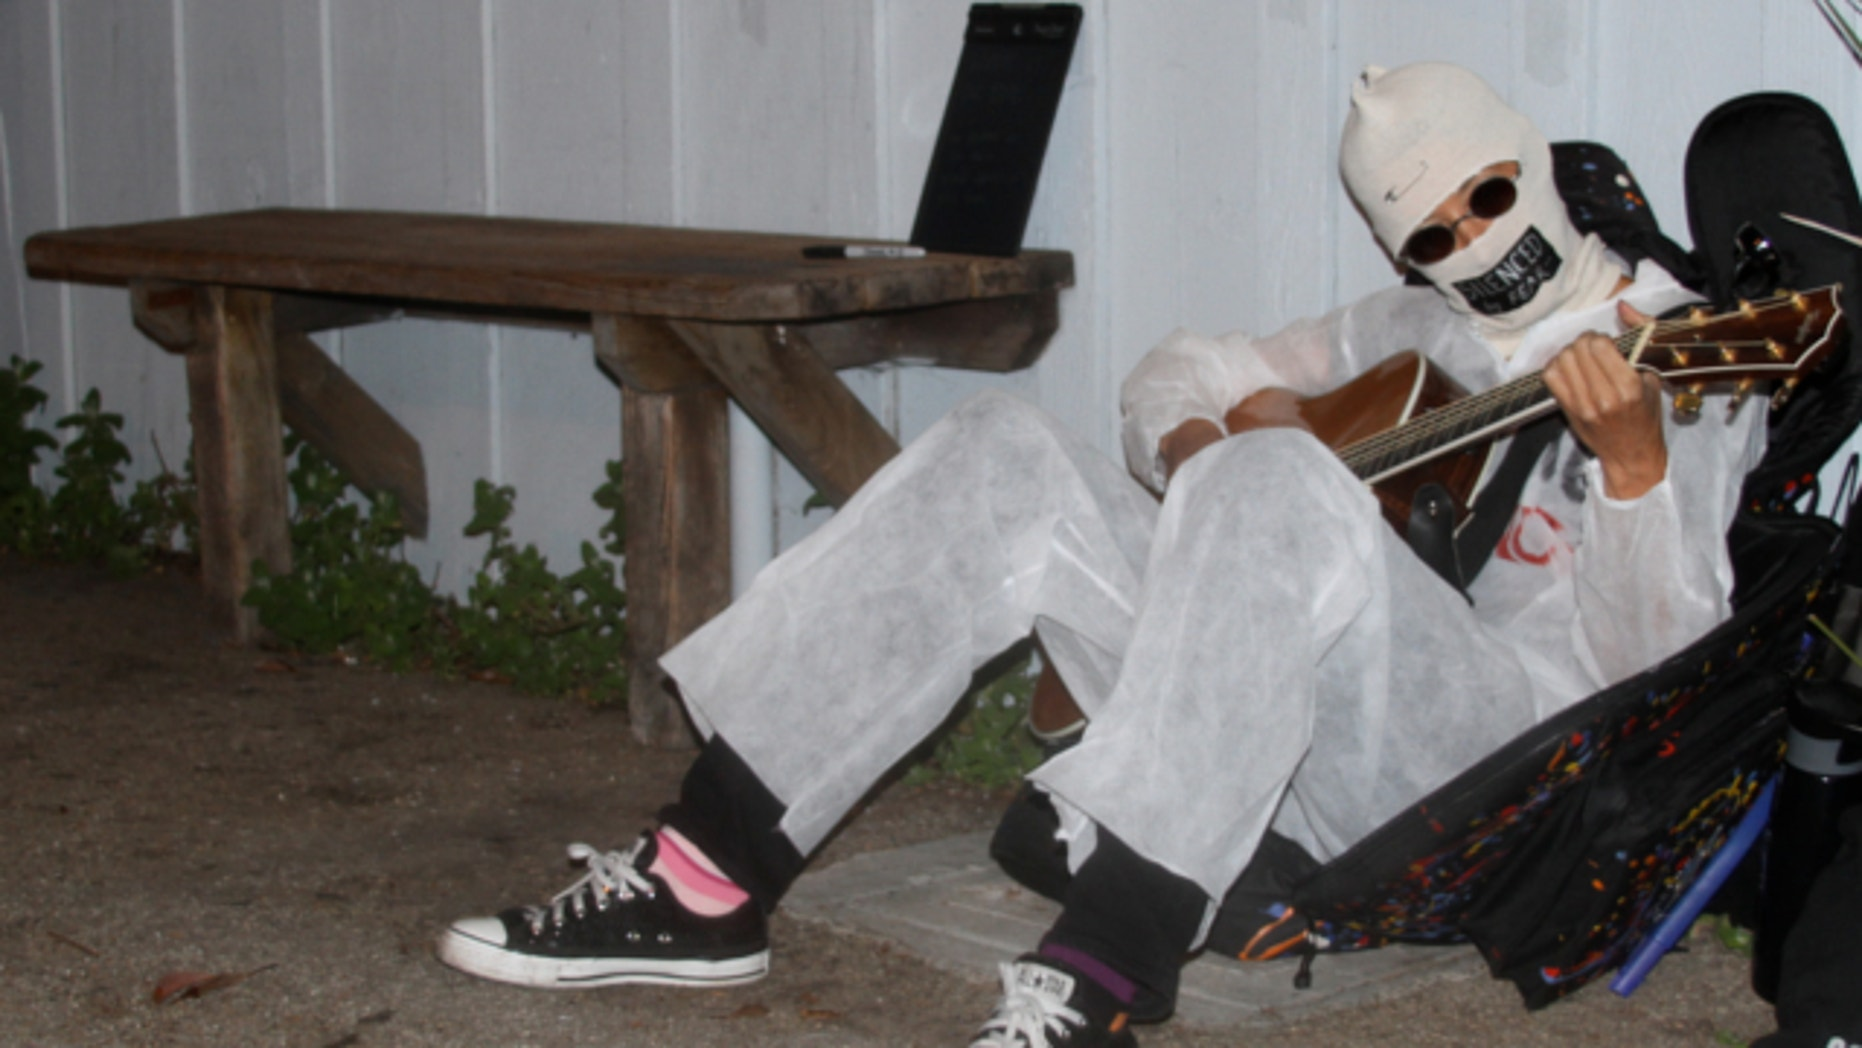 March 28, 2013: Alternative folk singer Michelle Shocked sits outside Moe's Alley nightclub in Santa Cruz Calif., and strums her guitar.